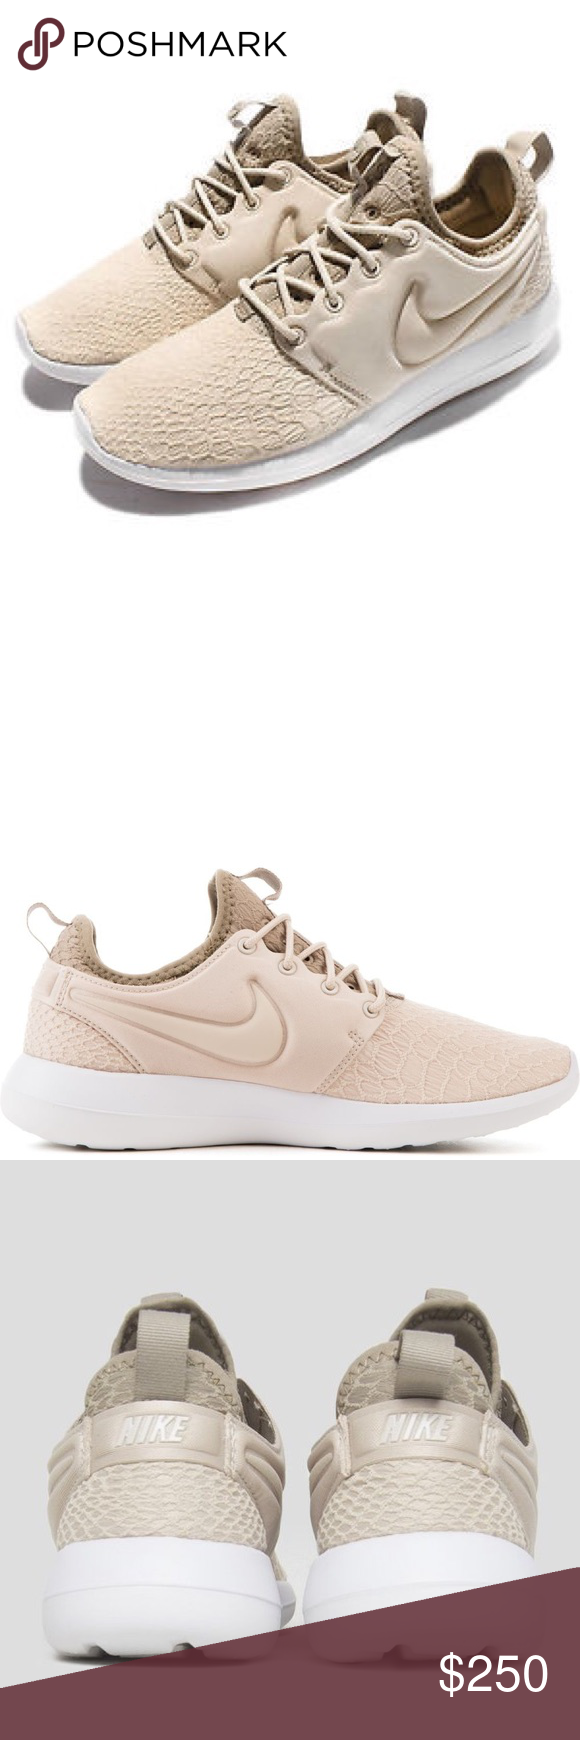 best authentic 567fd 72844 Nike Roshe Two SE Casual Sneakers - Oatmeal I have this ...